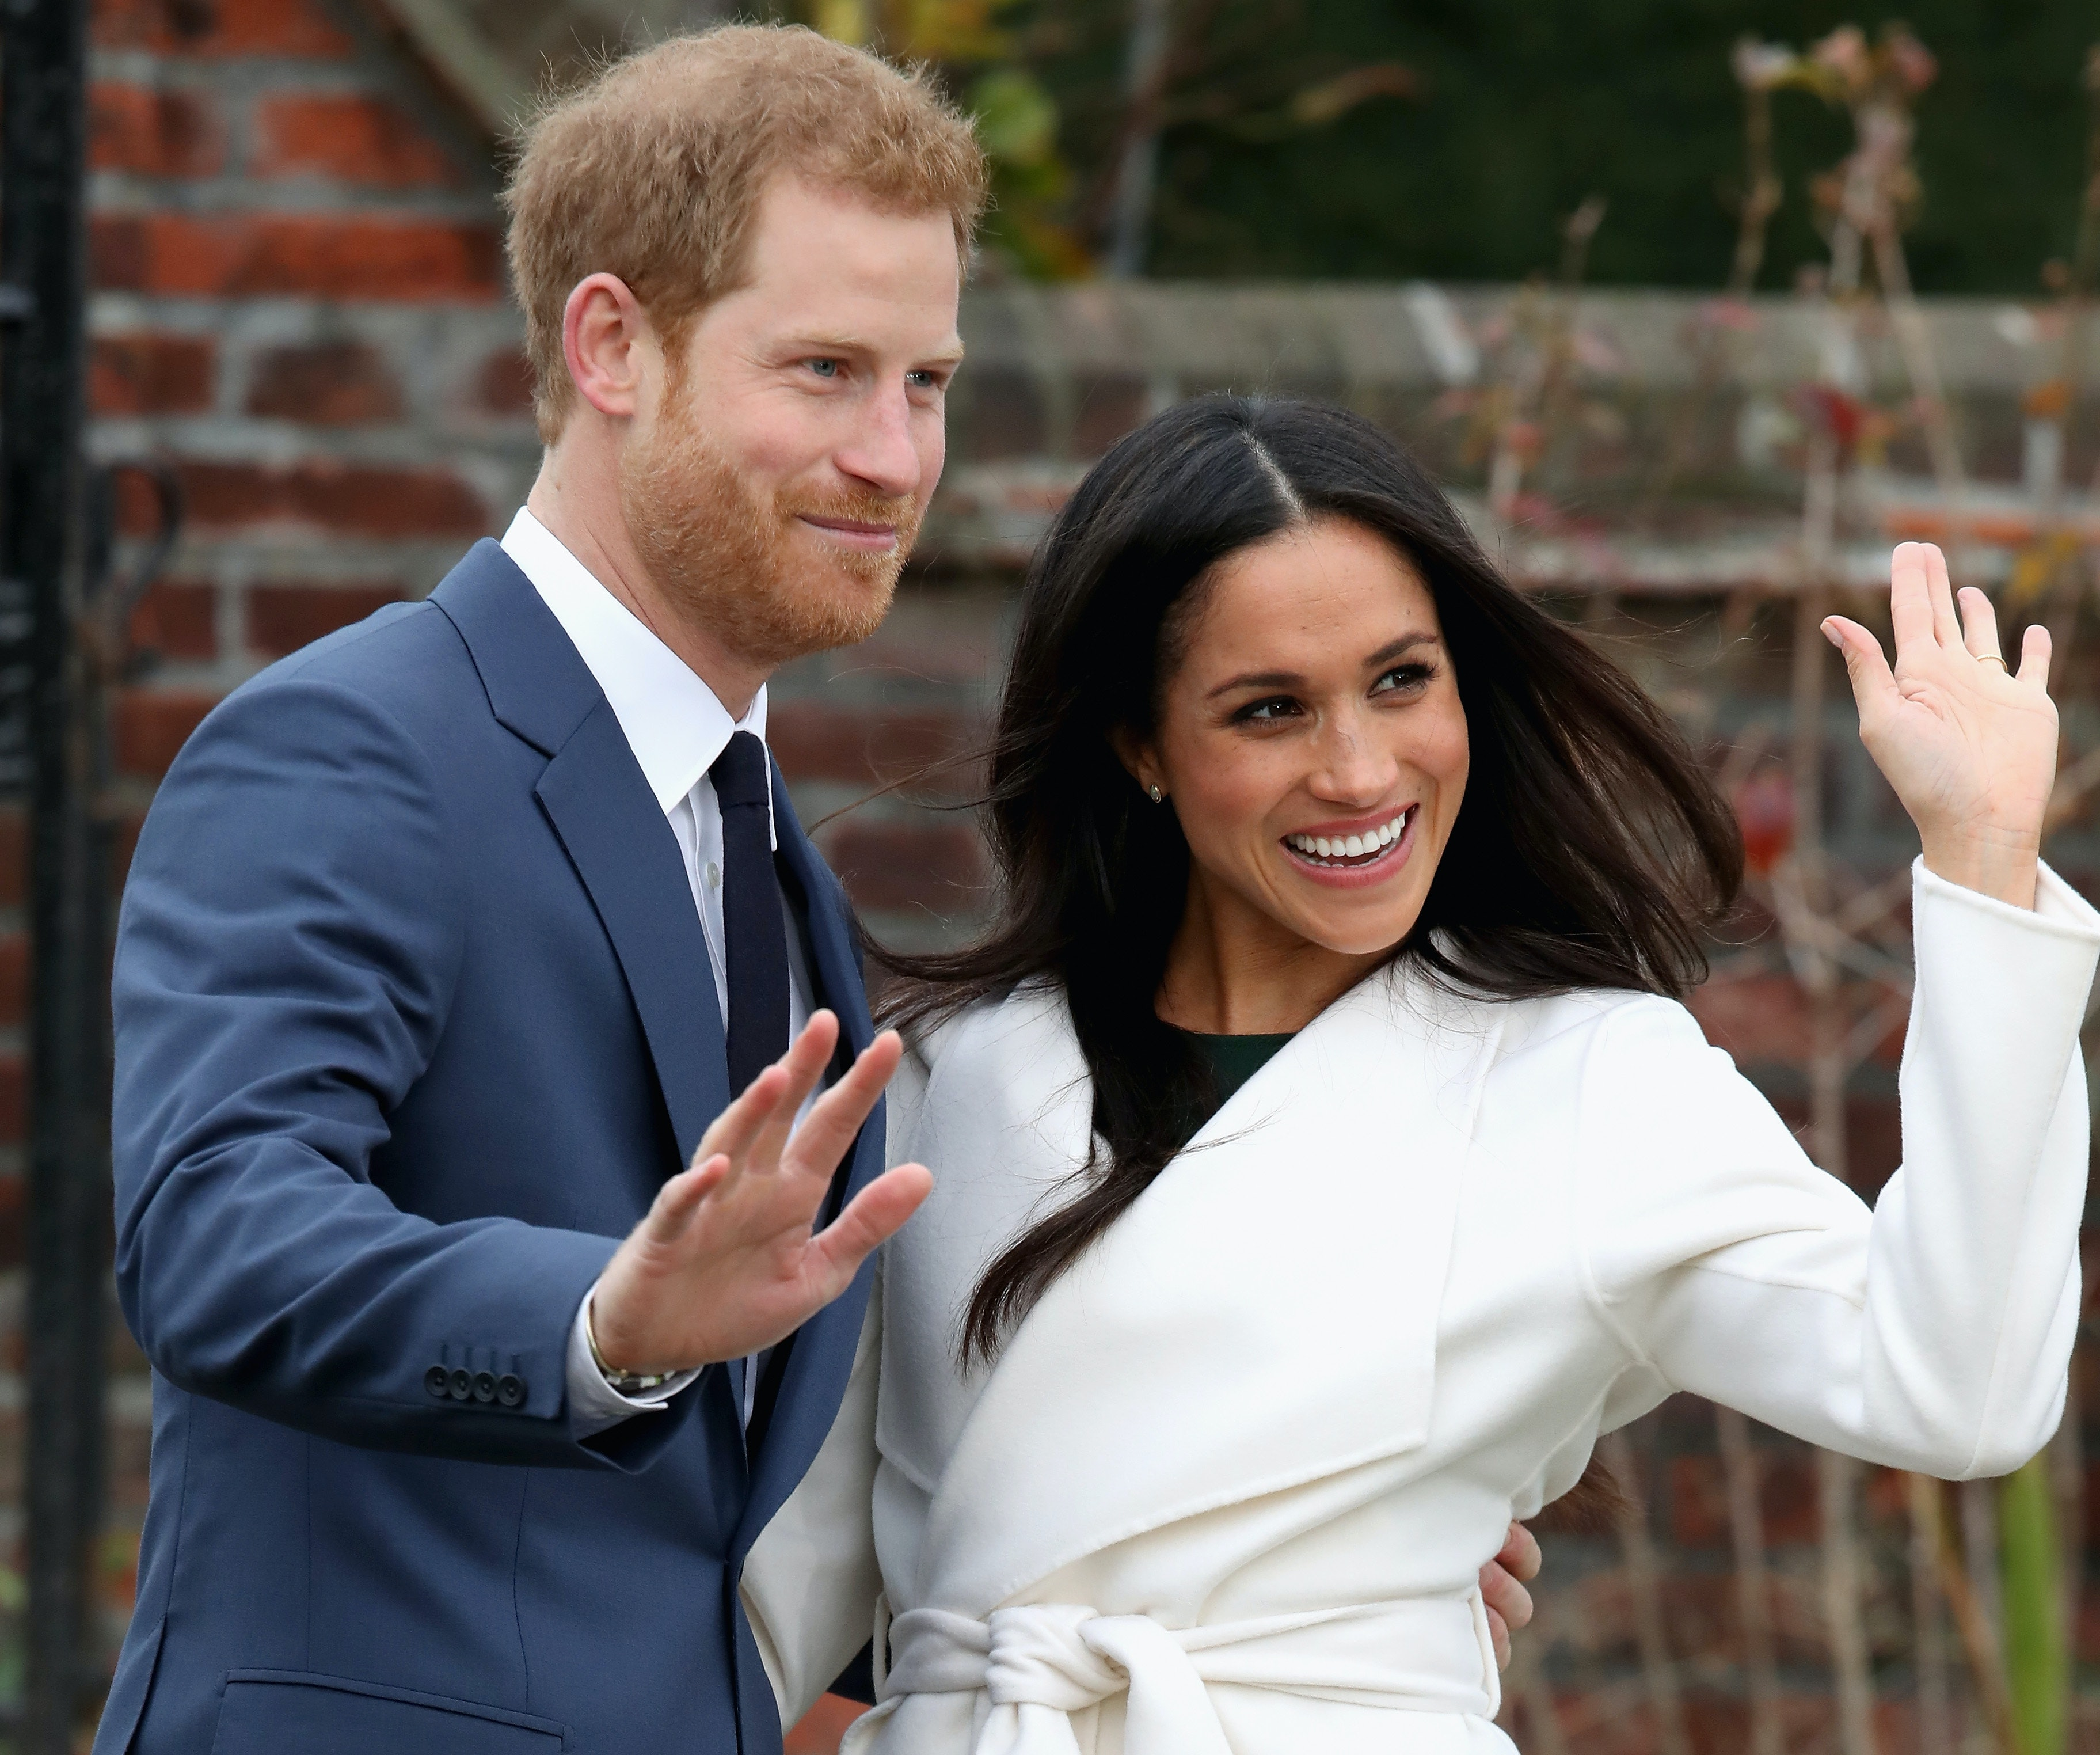 Royal Wedding Time.What Time Does The Royal Wedding Air In Pacific Time You Won T Want